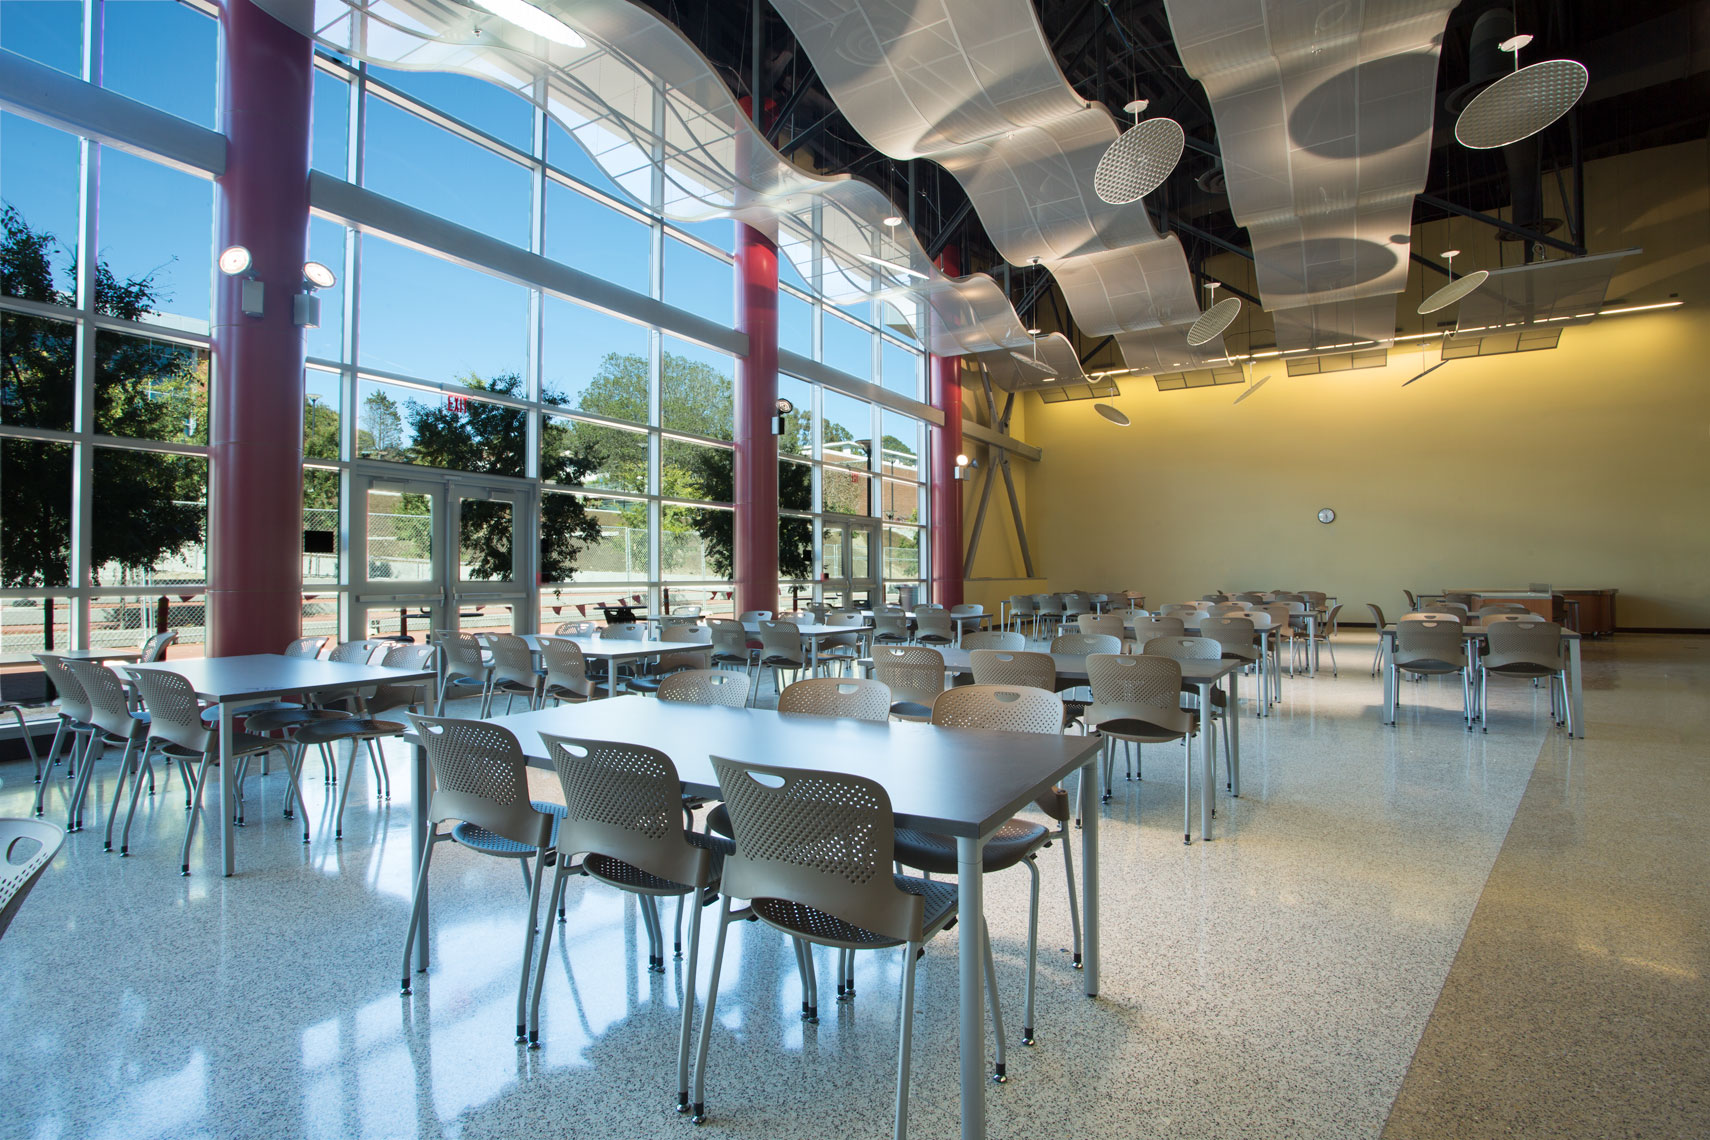 Cafeteria Interiors at Community College